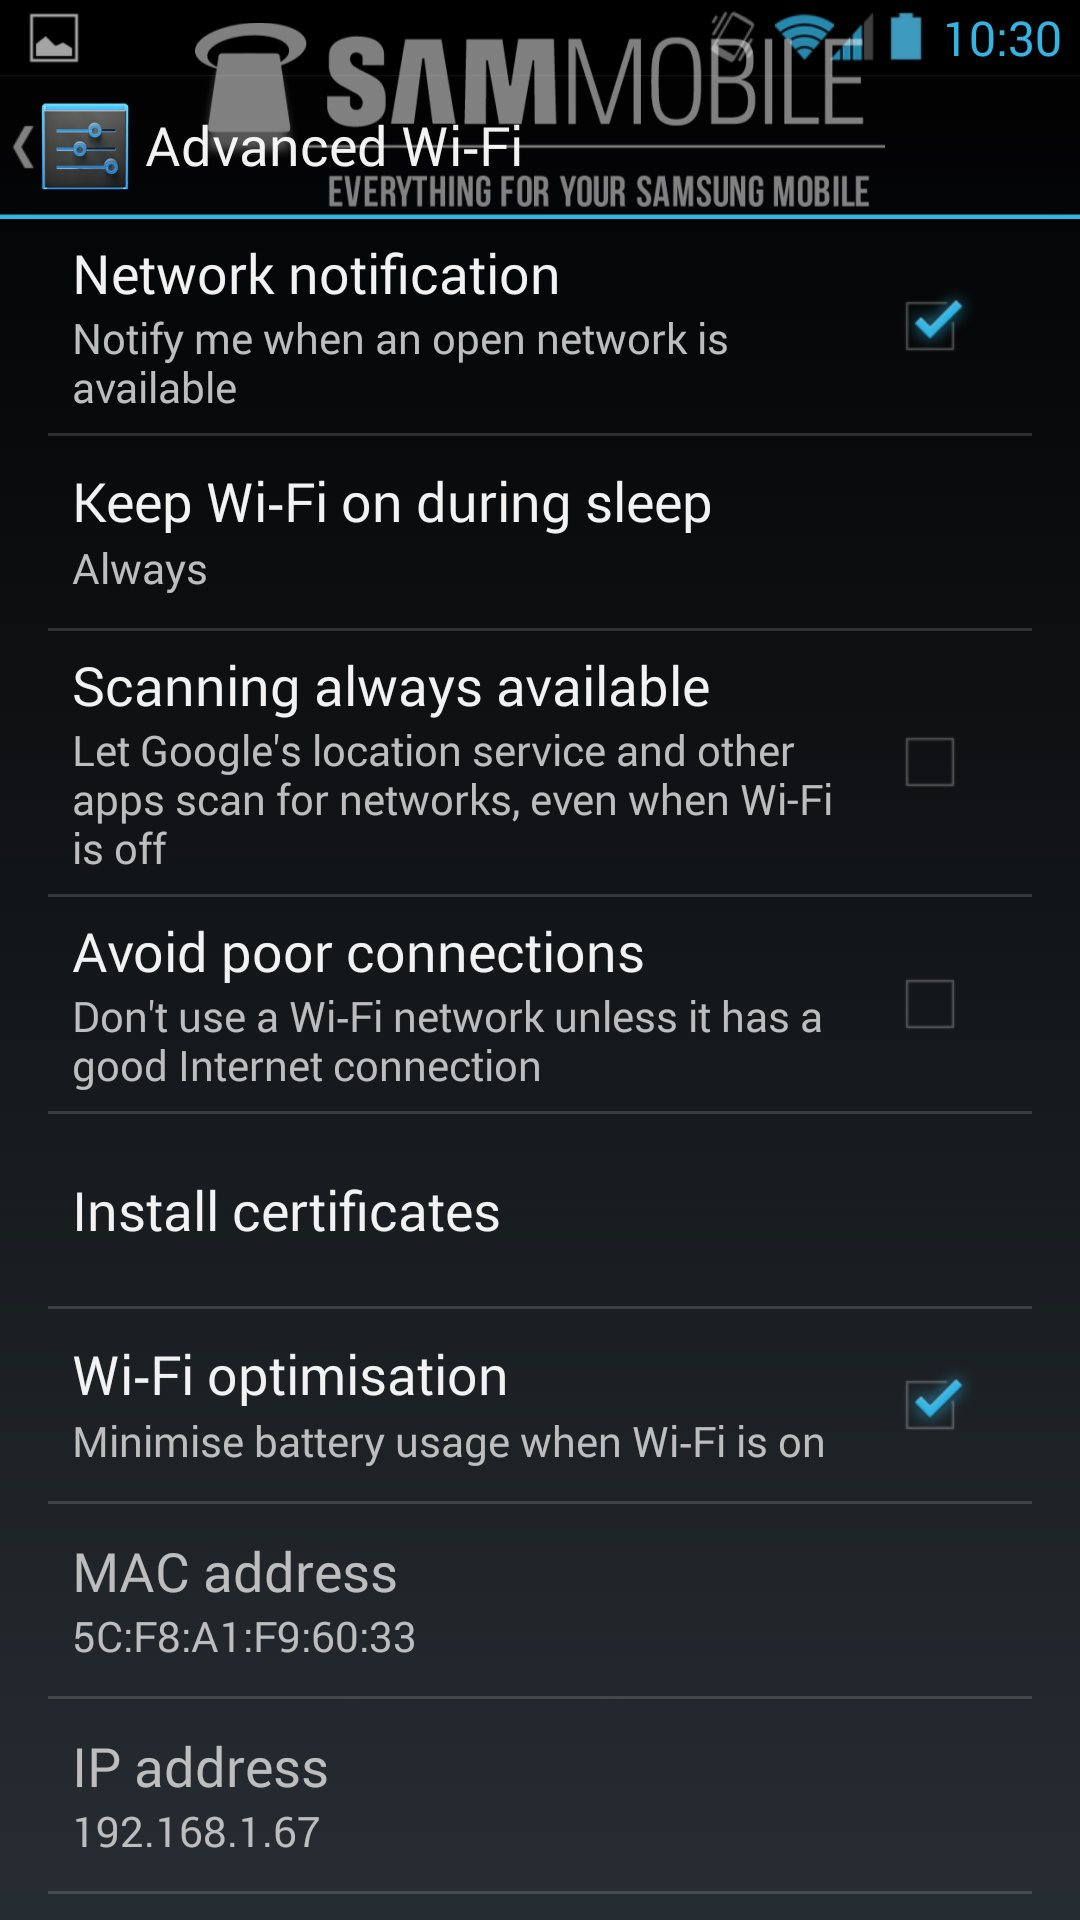 Looks like Android 4.3 may include some additional advanced Wi-Fi options.